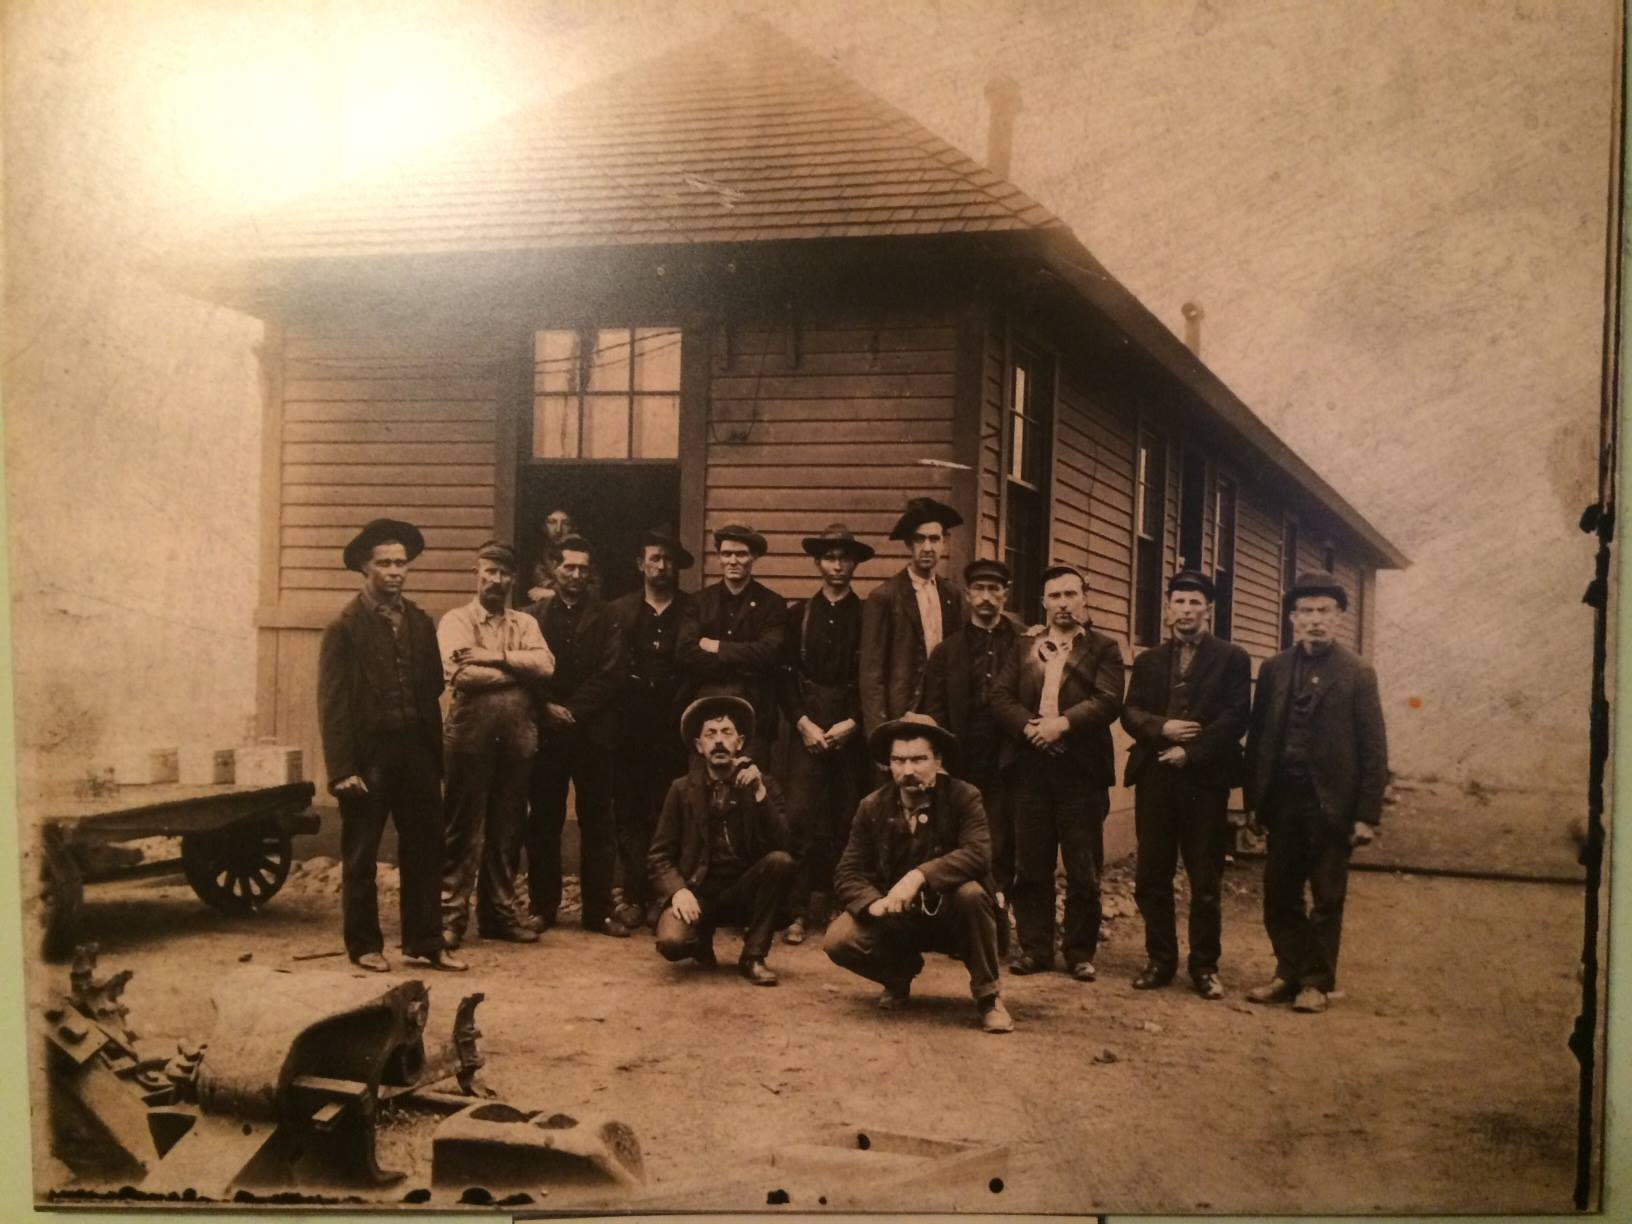 vintage photo of a group men from the early 1900's standing in front of the orchard tavern